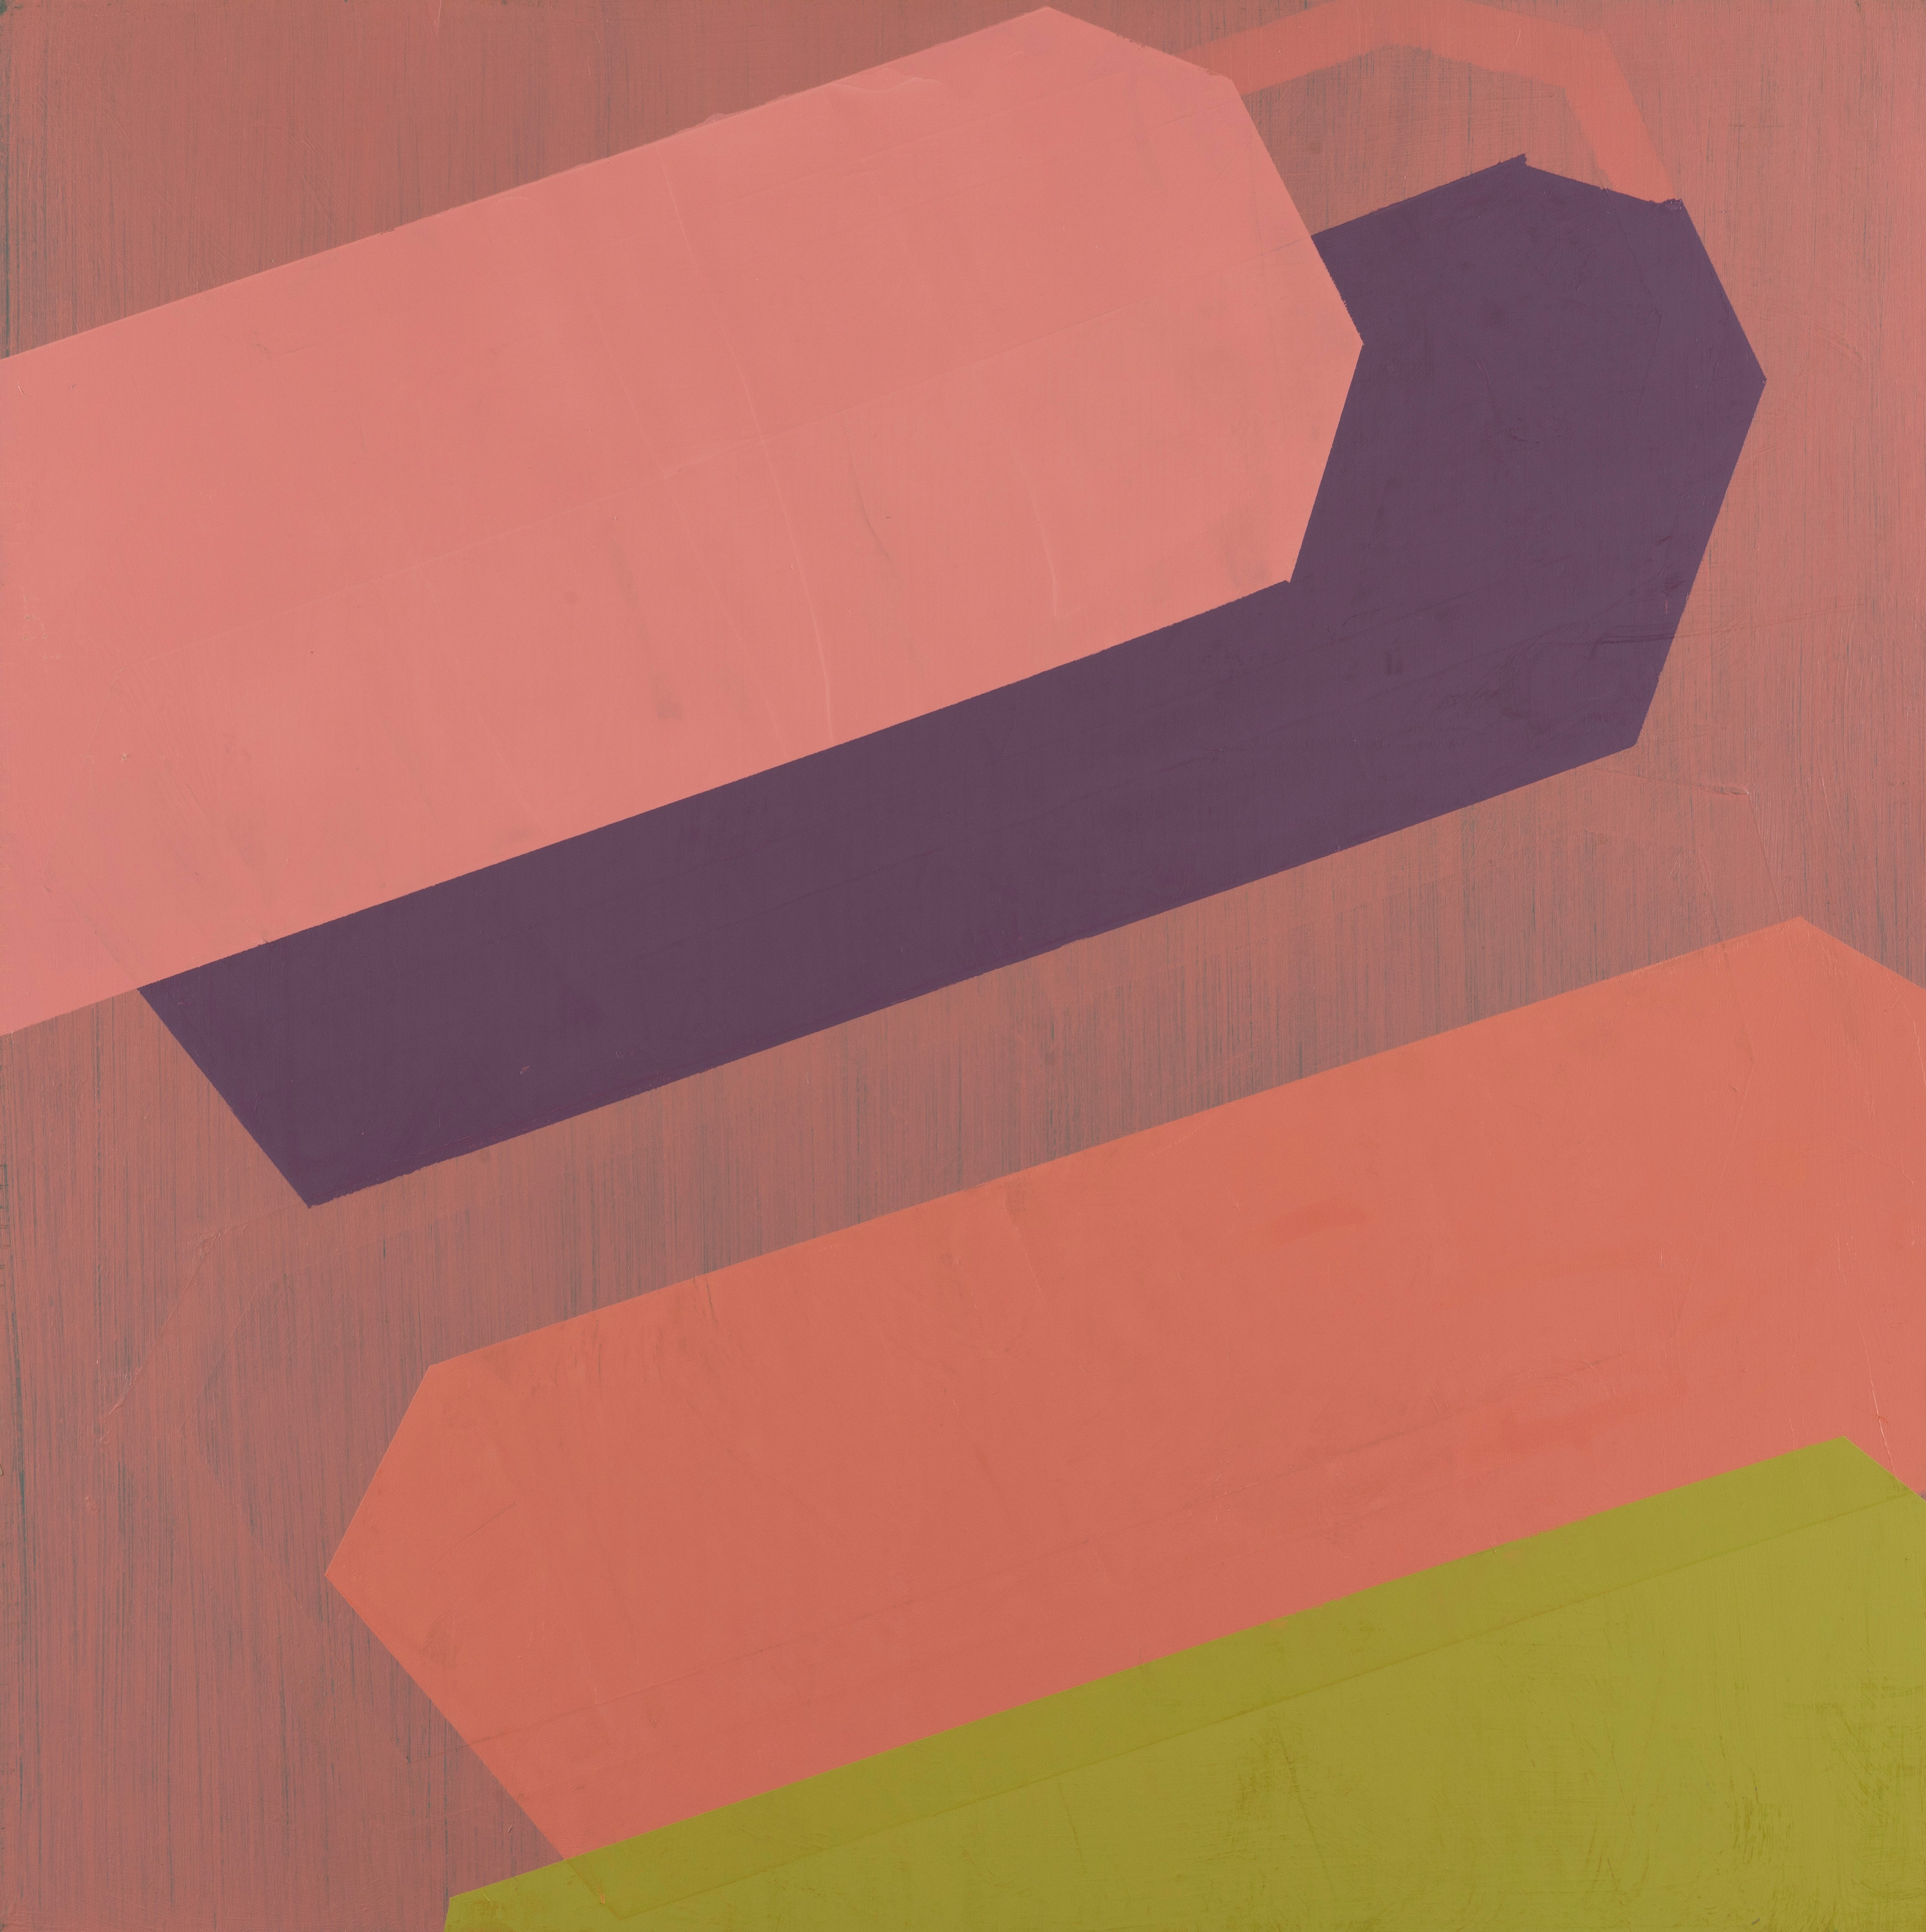 Pose, pink minimalist oil painting on panel, abstract shapes